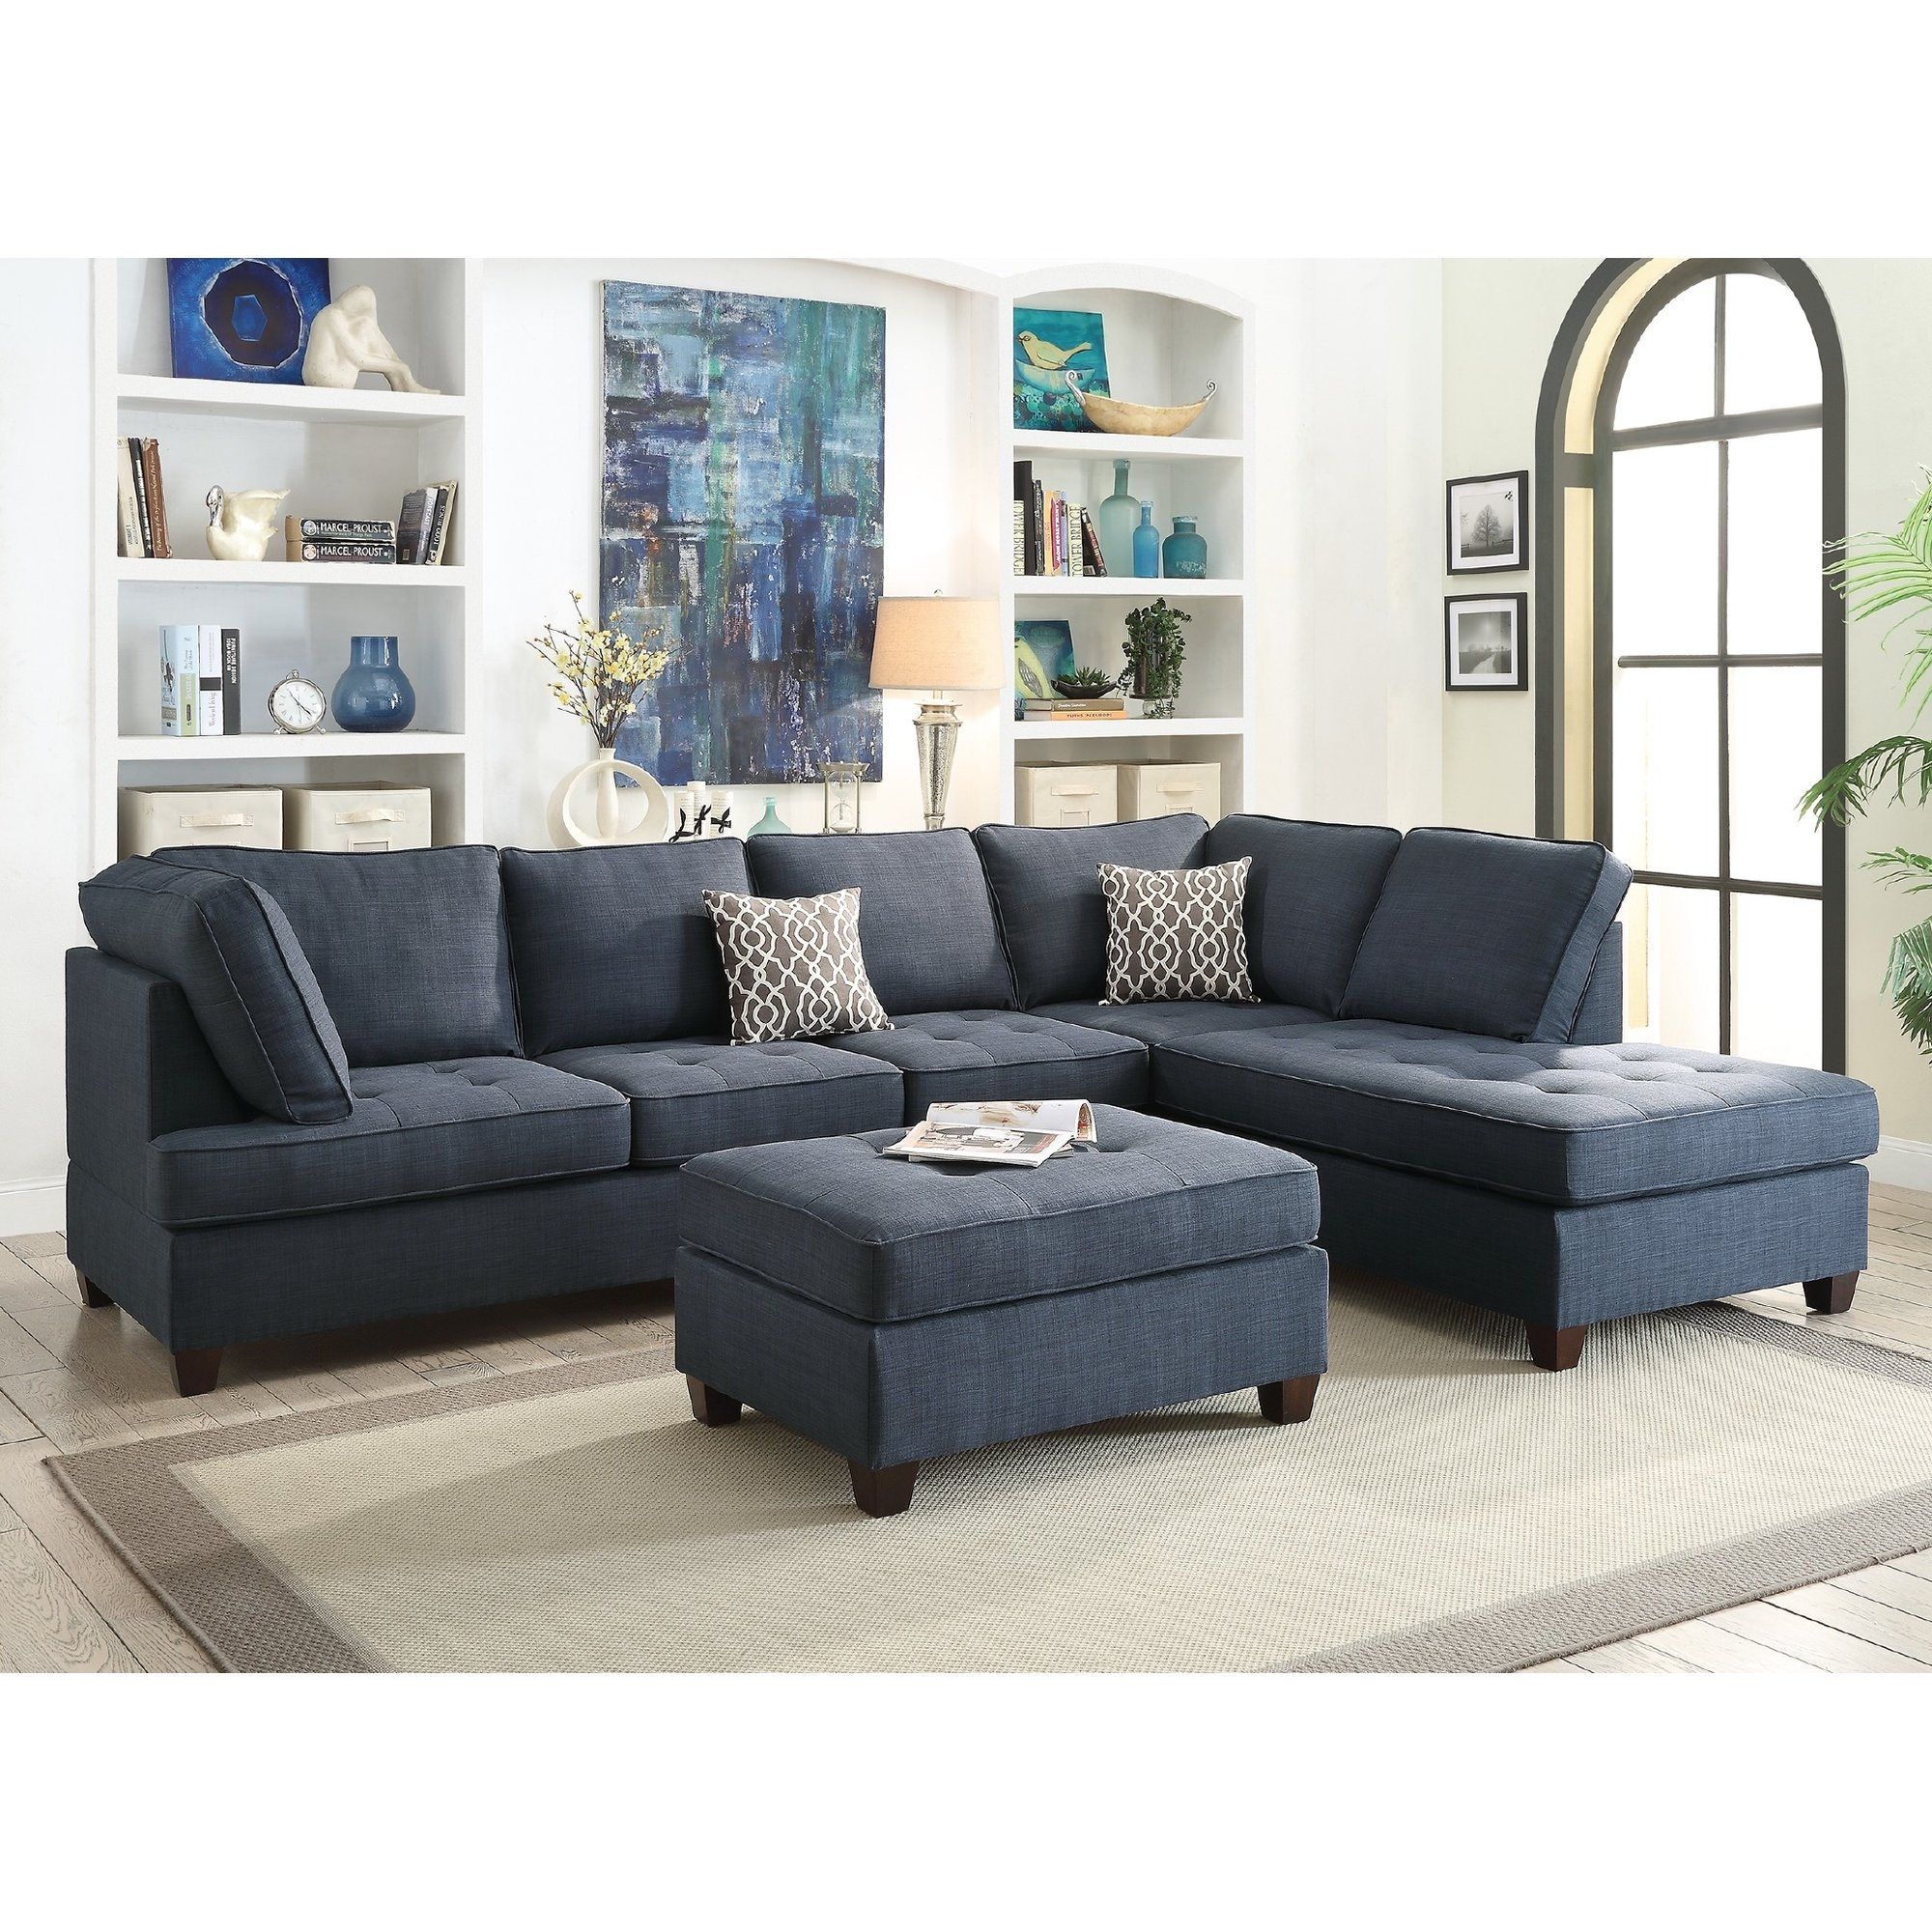 Sectional Sofas Youll Love Wayfair Intended For Curved Sectional Sofa With Recliner (#12 of 12)